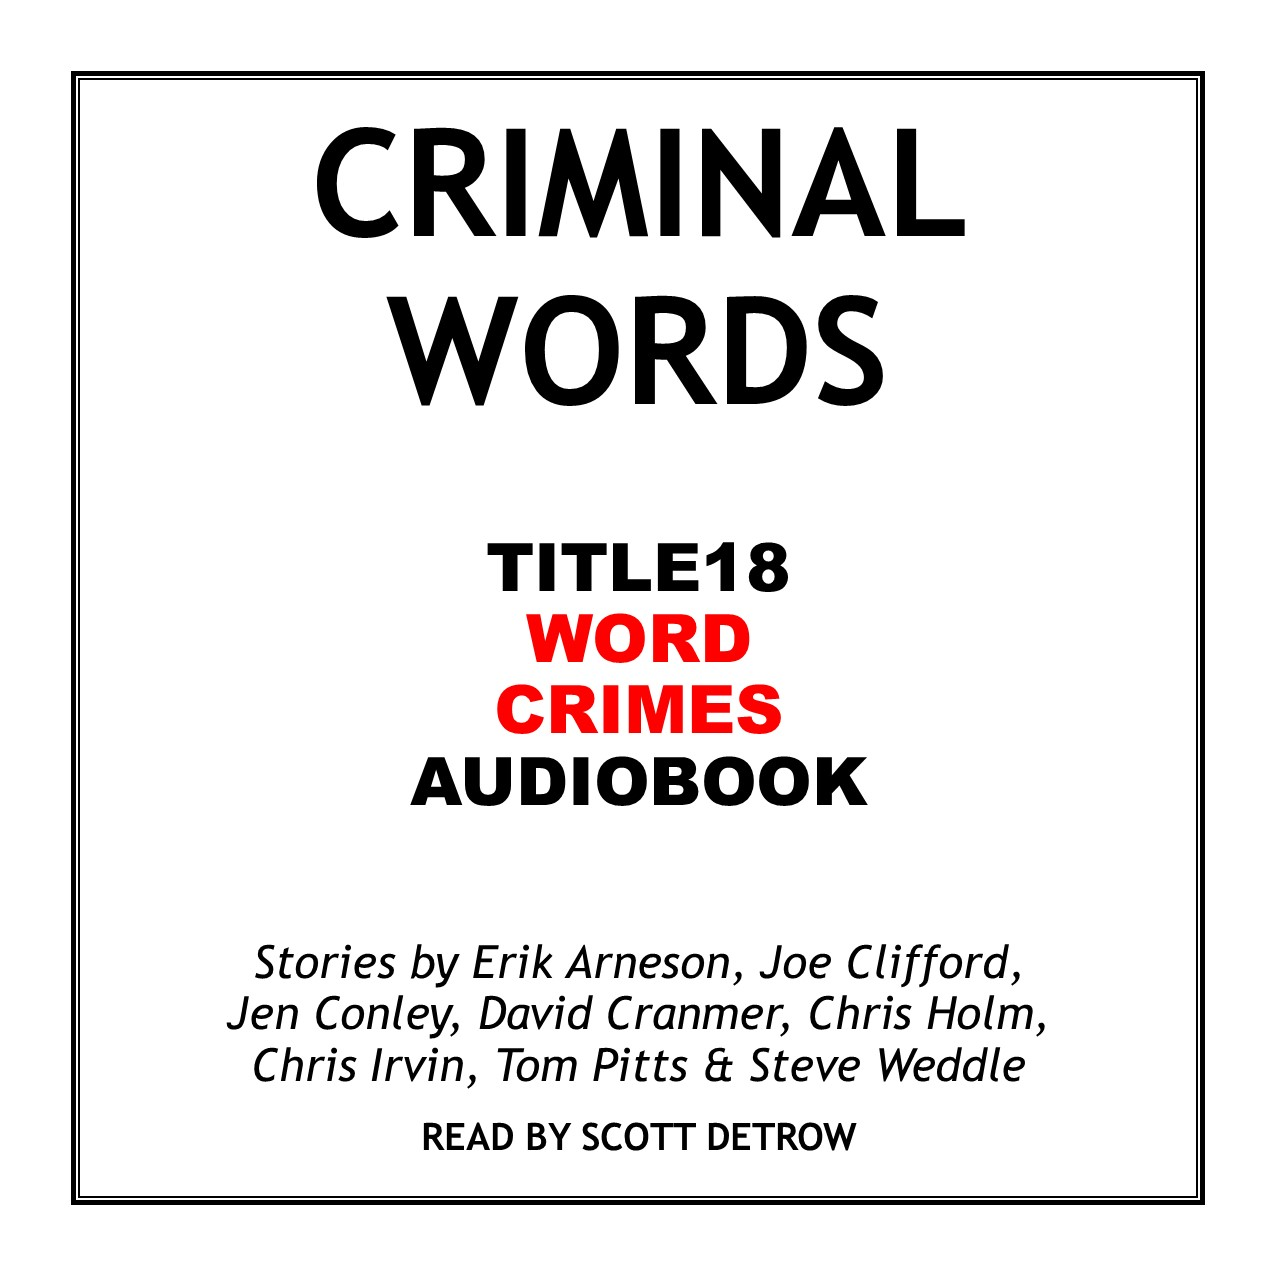 Criminal Words Audiobook